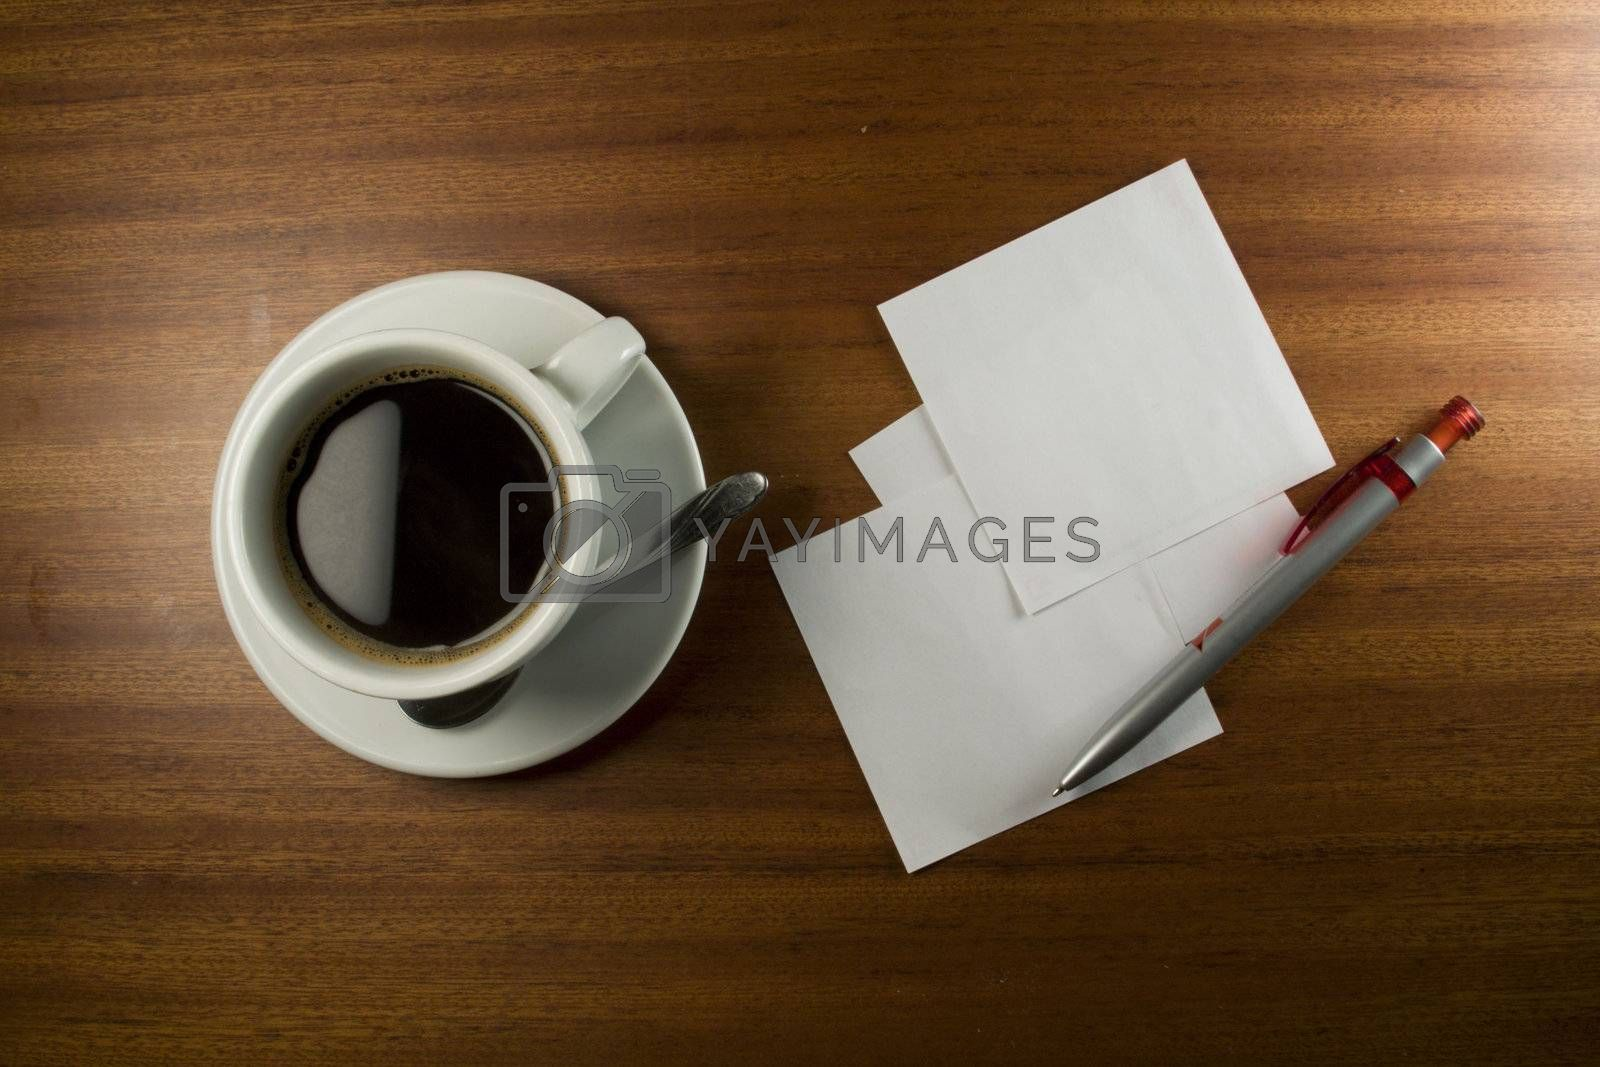 Note Card, Pen and Coffee Cup on Wood Background.